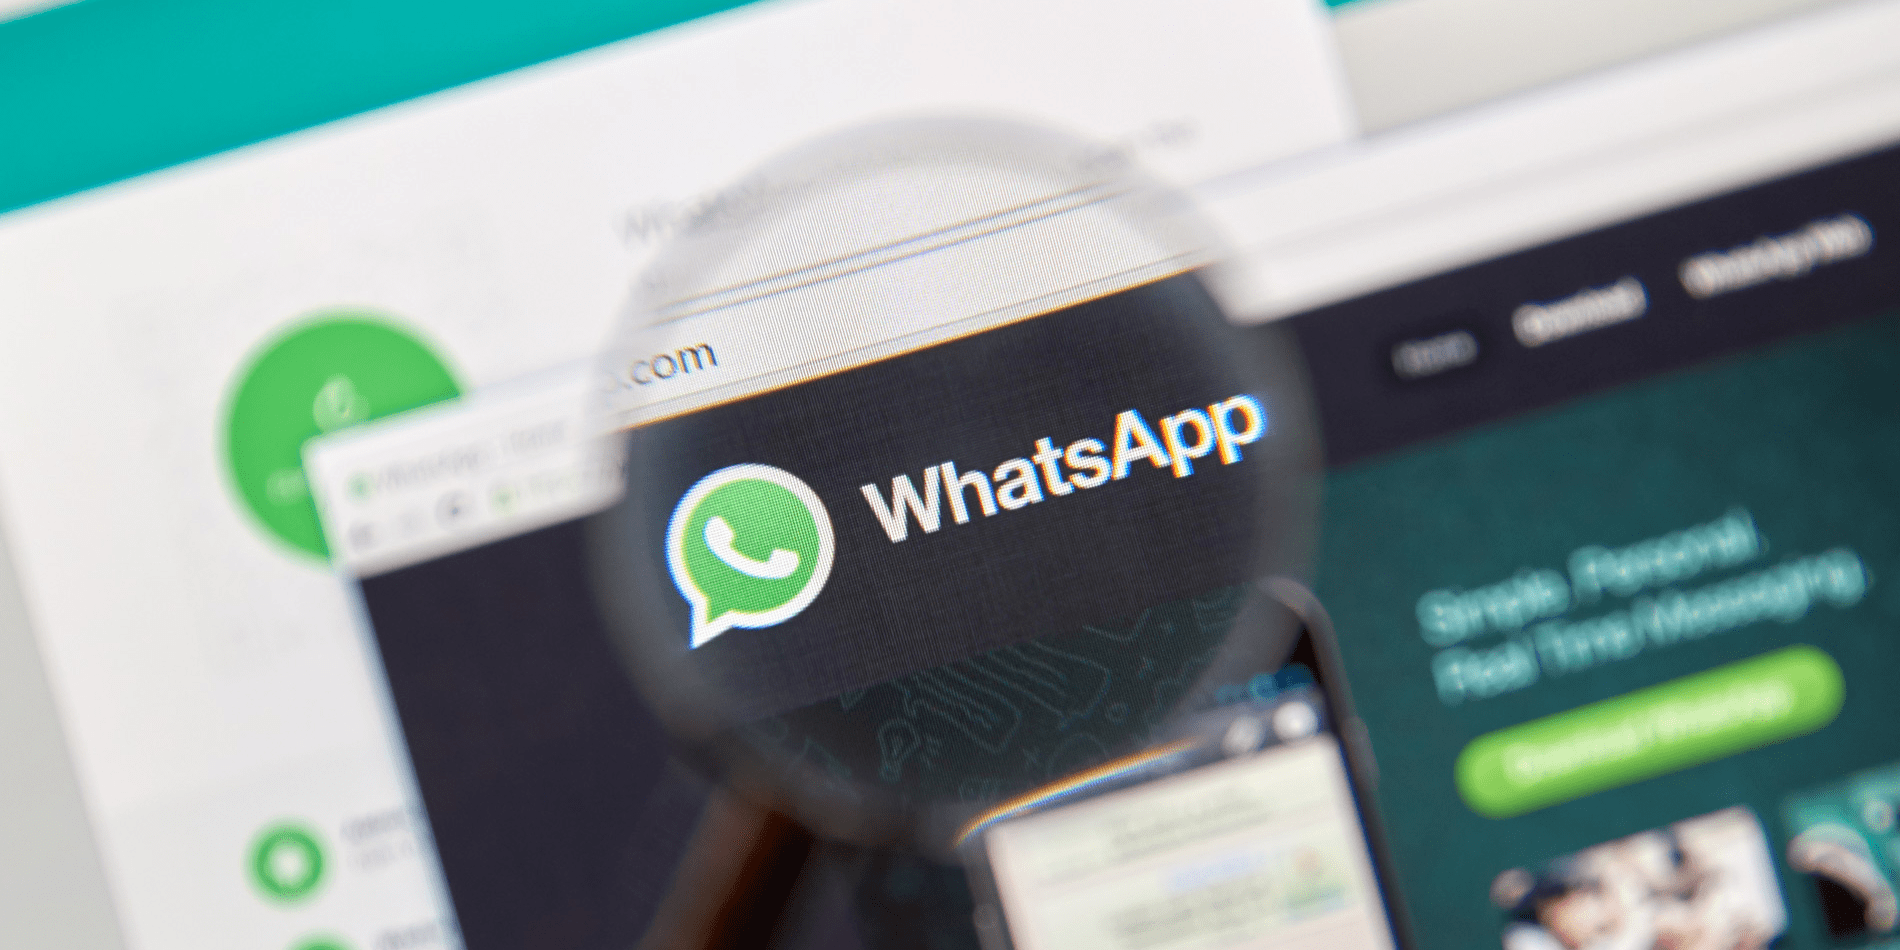 How to Download and Use WhatsApp on a Computer